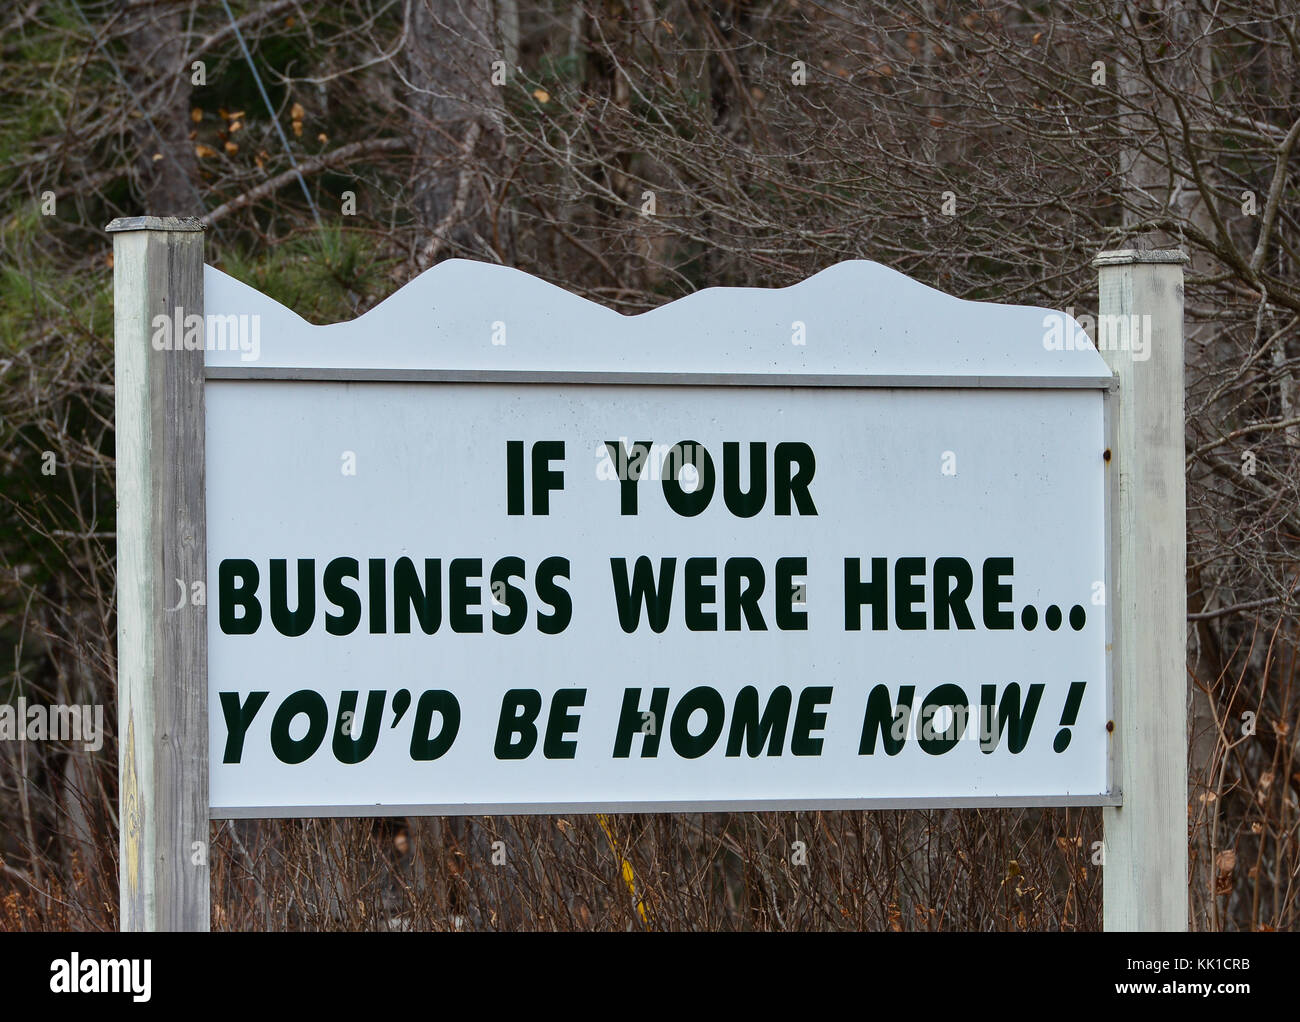 Sign in tourist town, Lake Pleasant, in the Adirondack Mountains, NY suggesting moving your business to the area. - Stock Image